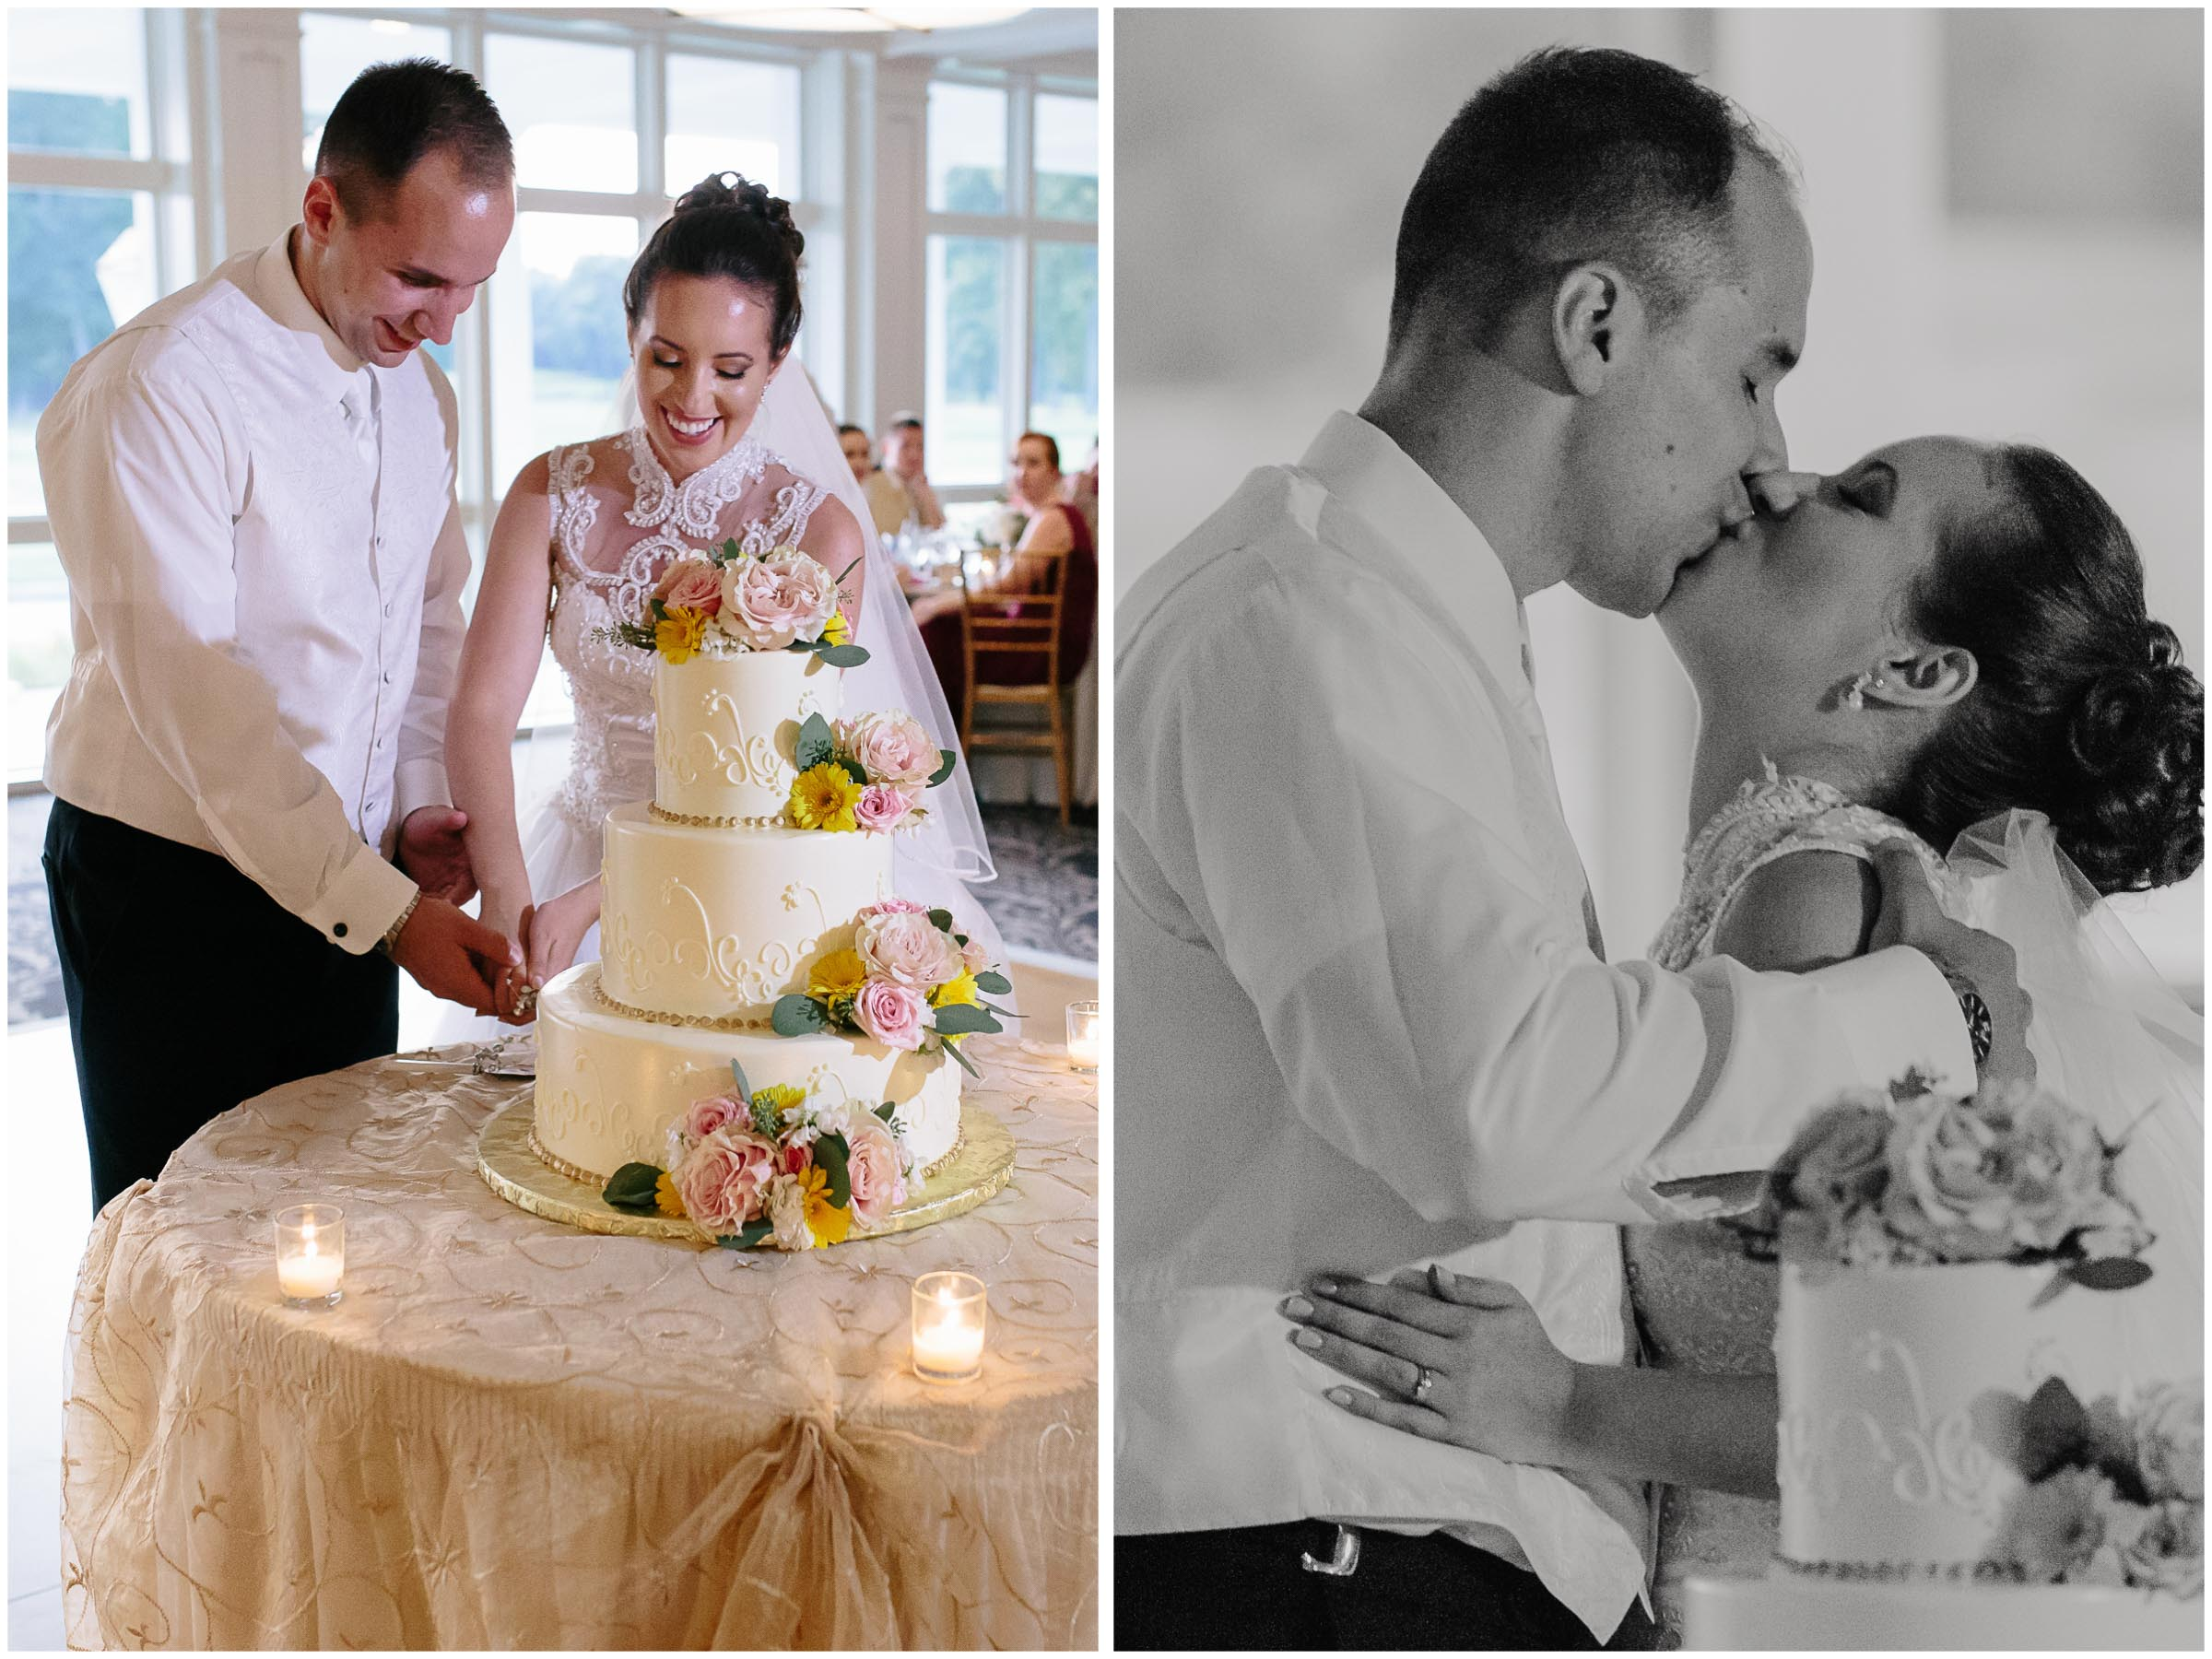 Chic New Hampshire Wedding at Manchester Country Club Bedford - bride and groom cutting cake